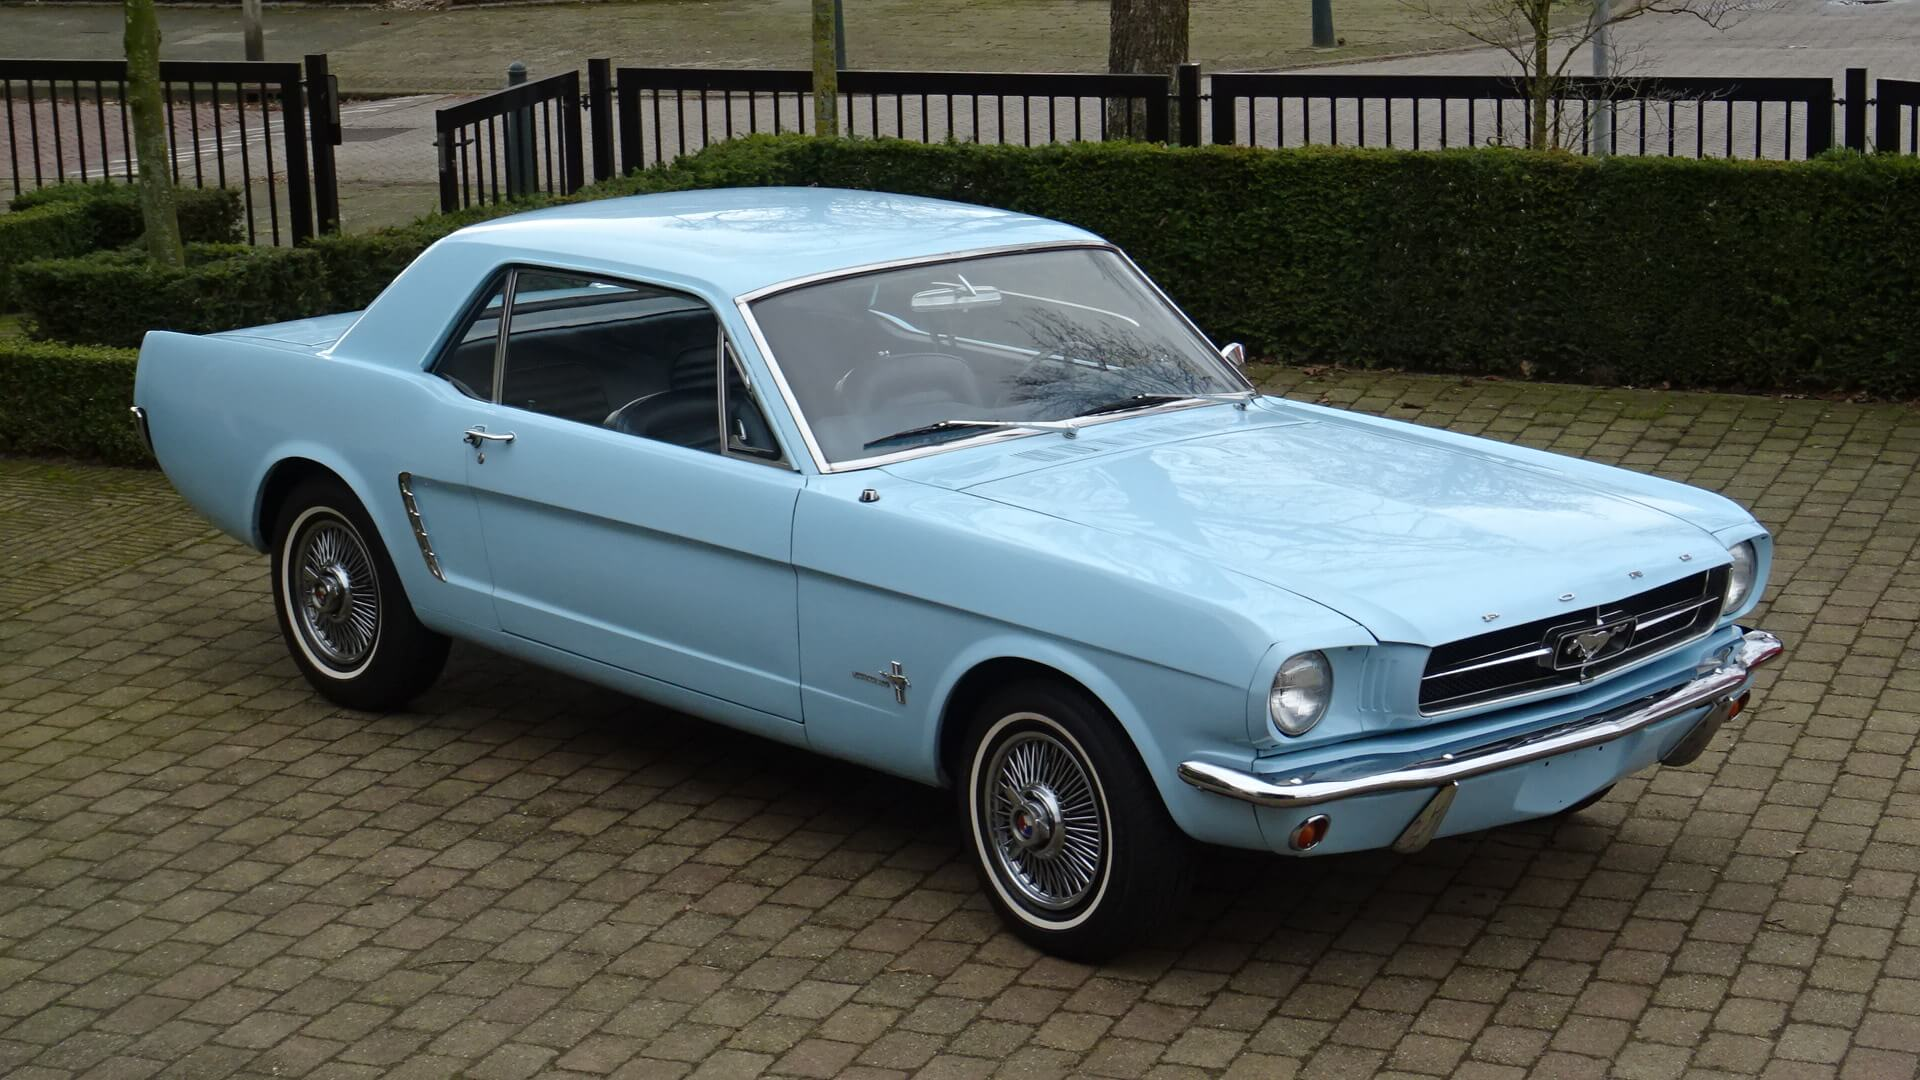 65 Ford Mustang Coupe Union Jack Vintage Cars